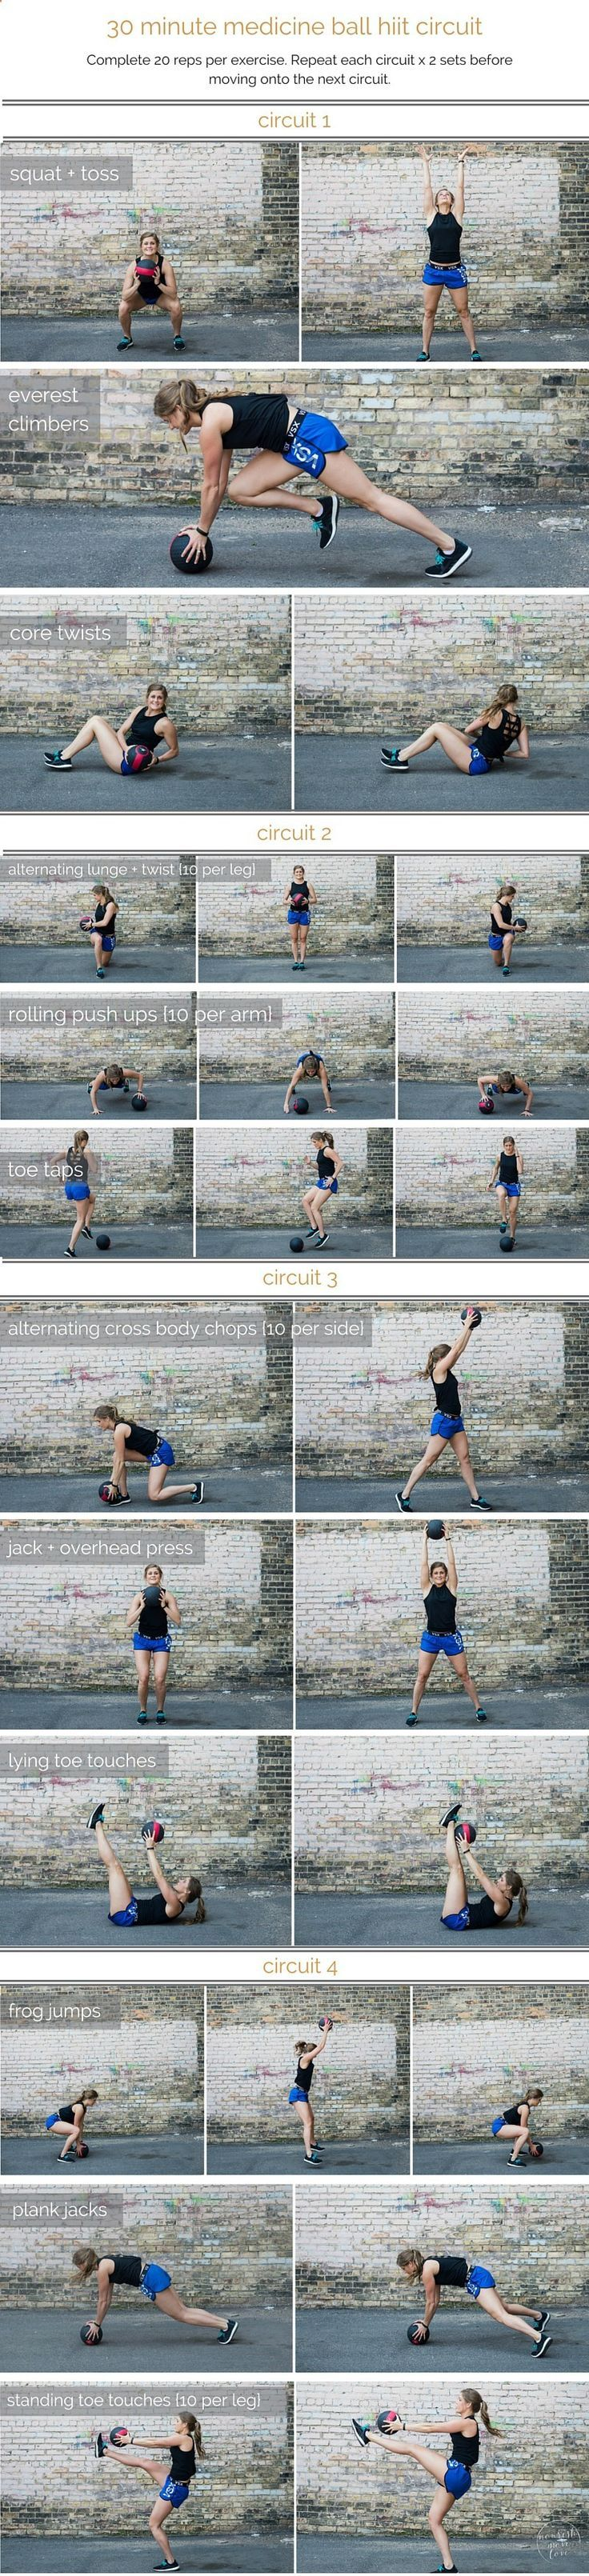 medicine ball hiit circuit workout | combine cardio, strength and stability in this medicine ball hiit circuit; a total body workout that you can do in 30 minutes or less. | www.nourishmovelo...